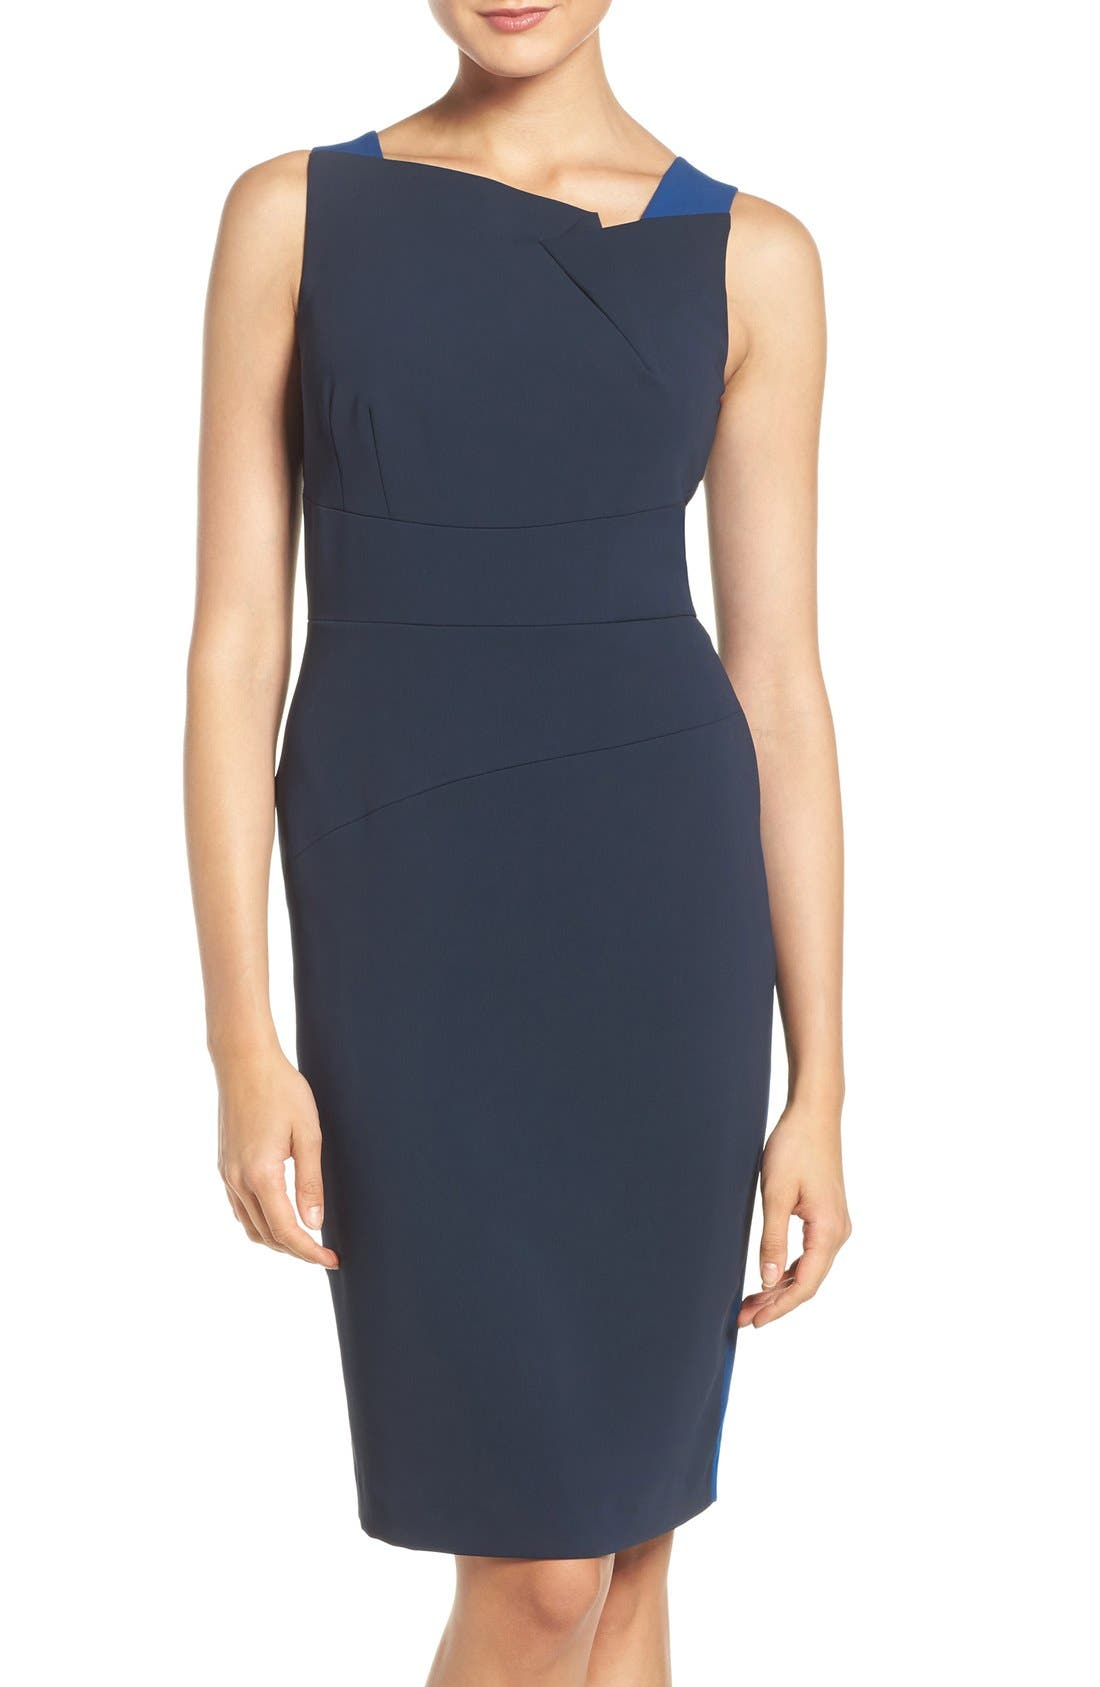 Alternate Image 1 Selected - Adrianna Papell Colorblock Stretch Sheath Dress